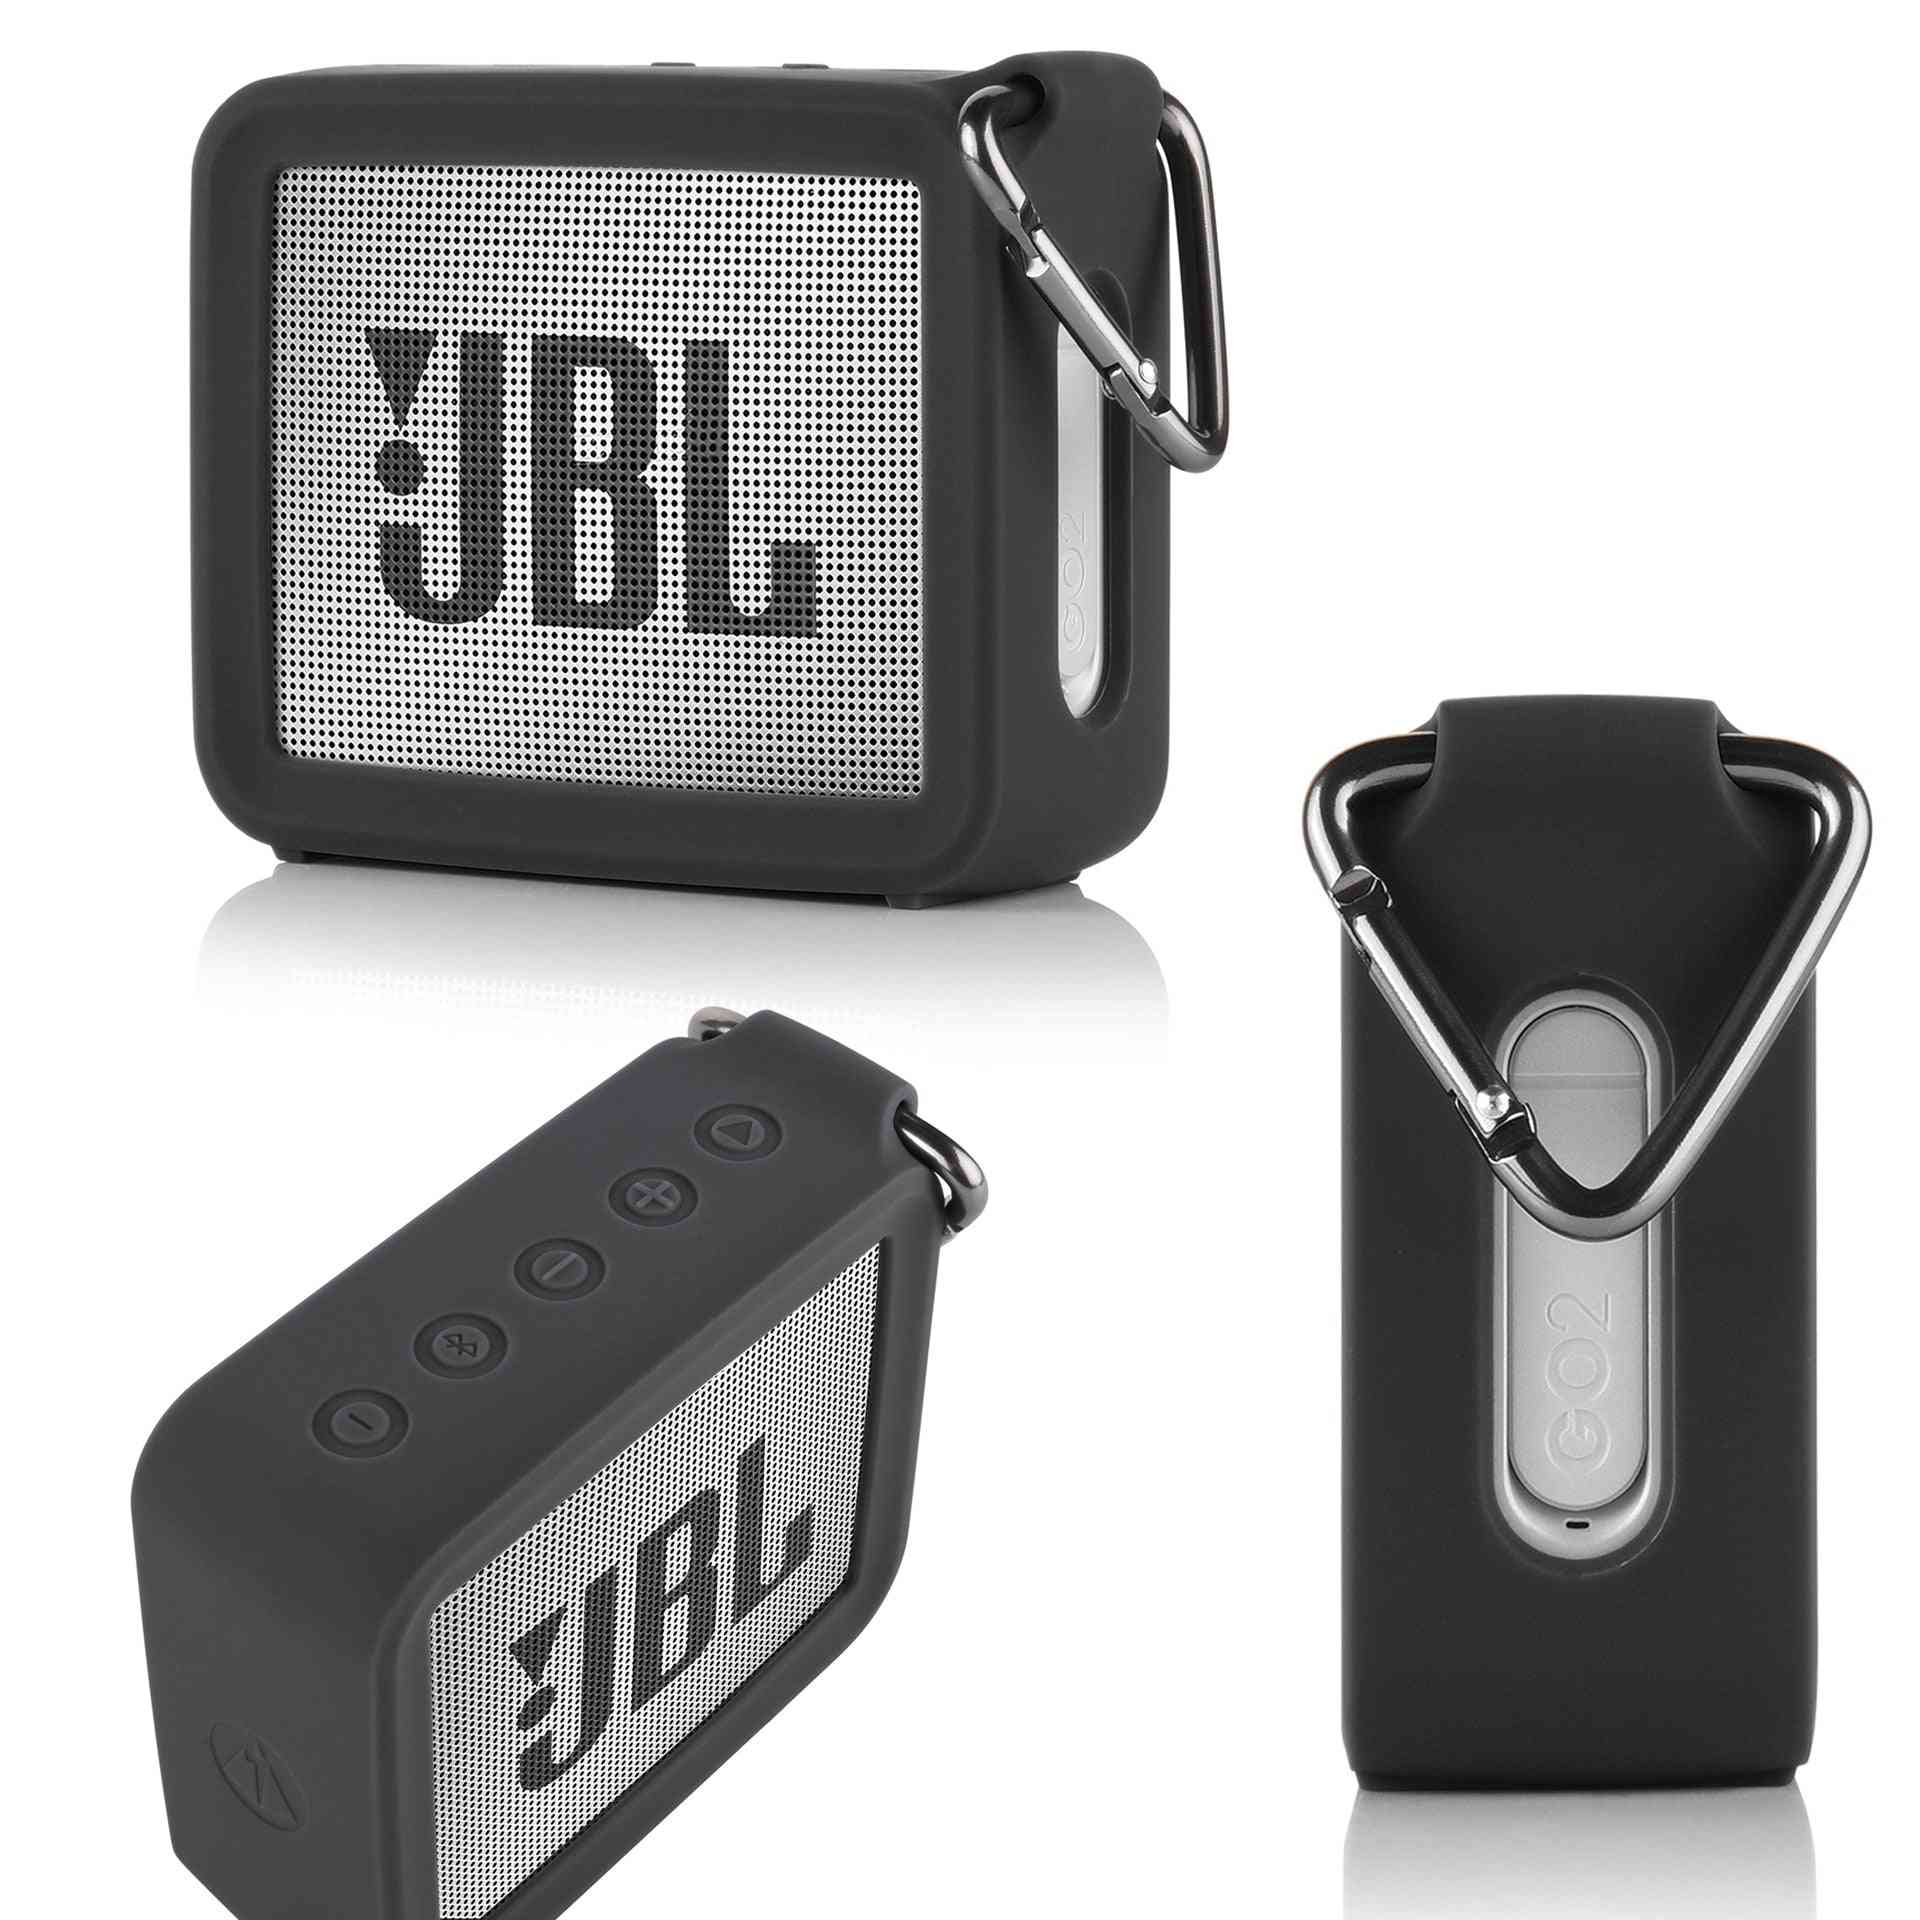 Portable Silicone Travel Case For Jbl Go2 Bluetooth Speaker